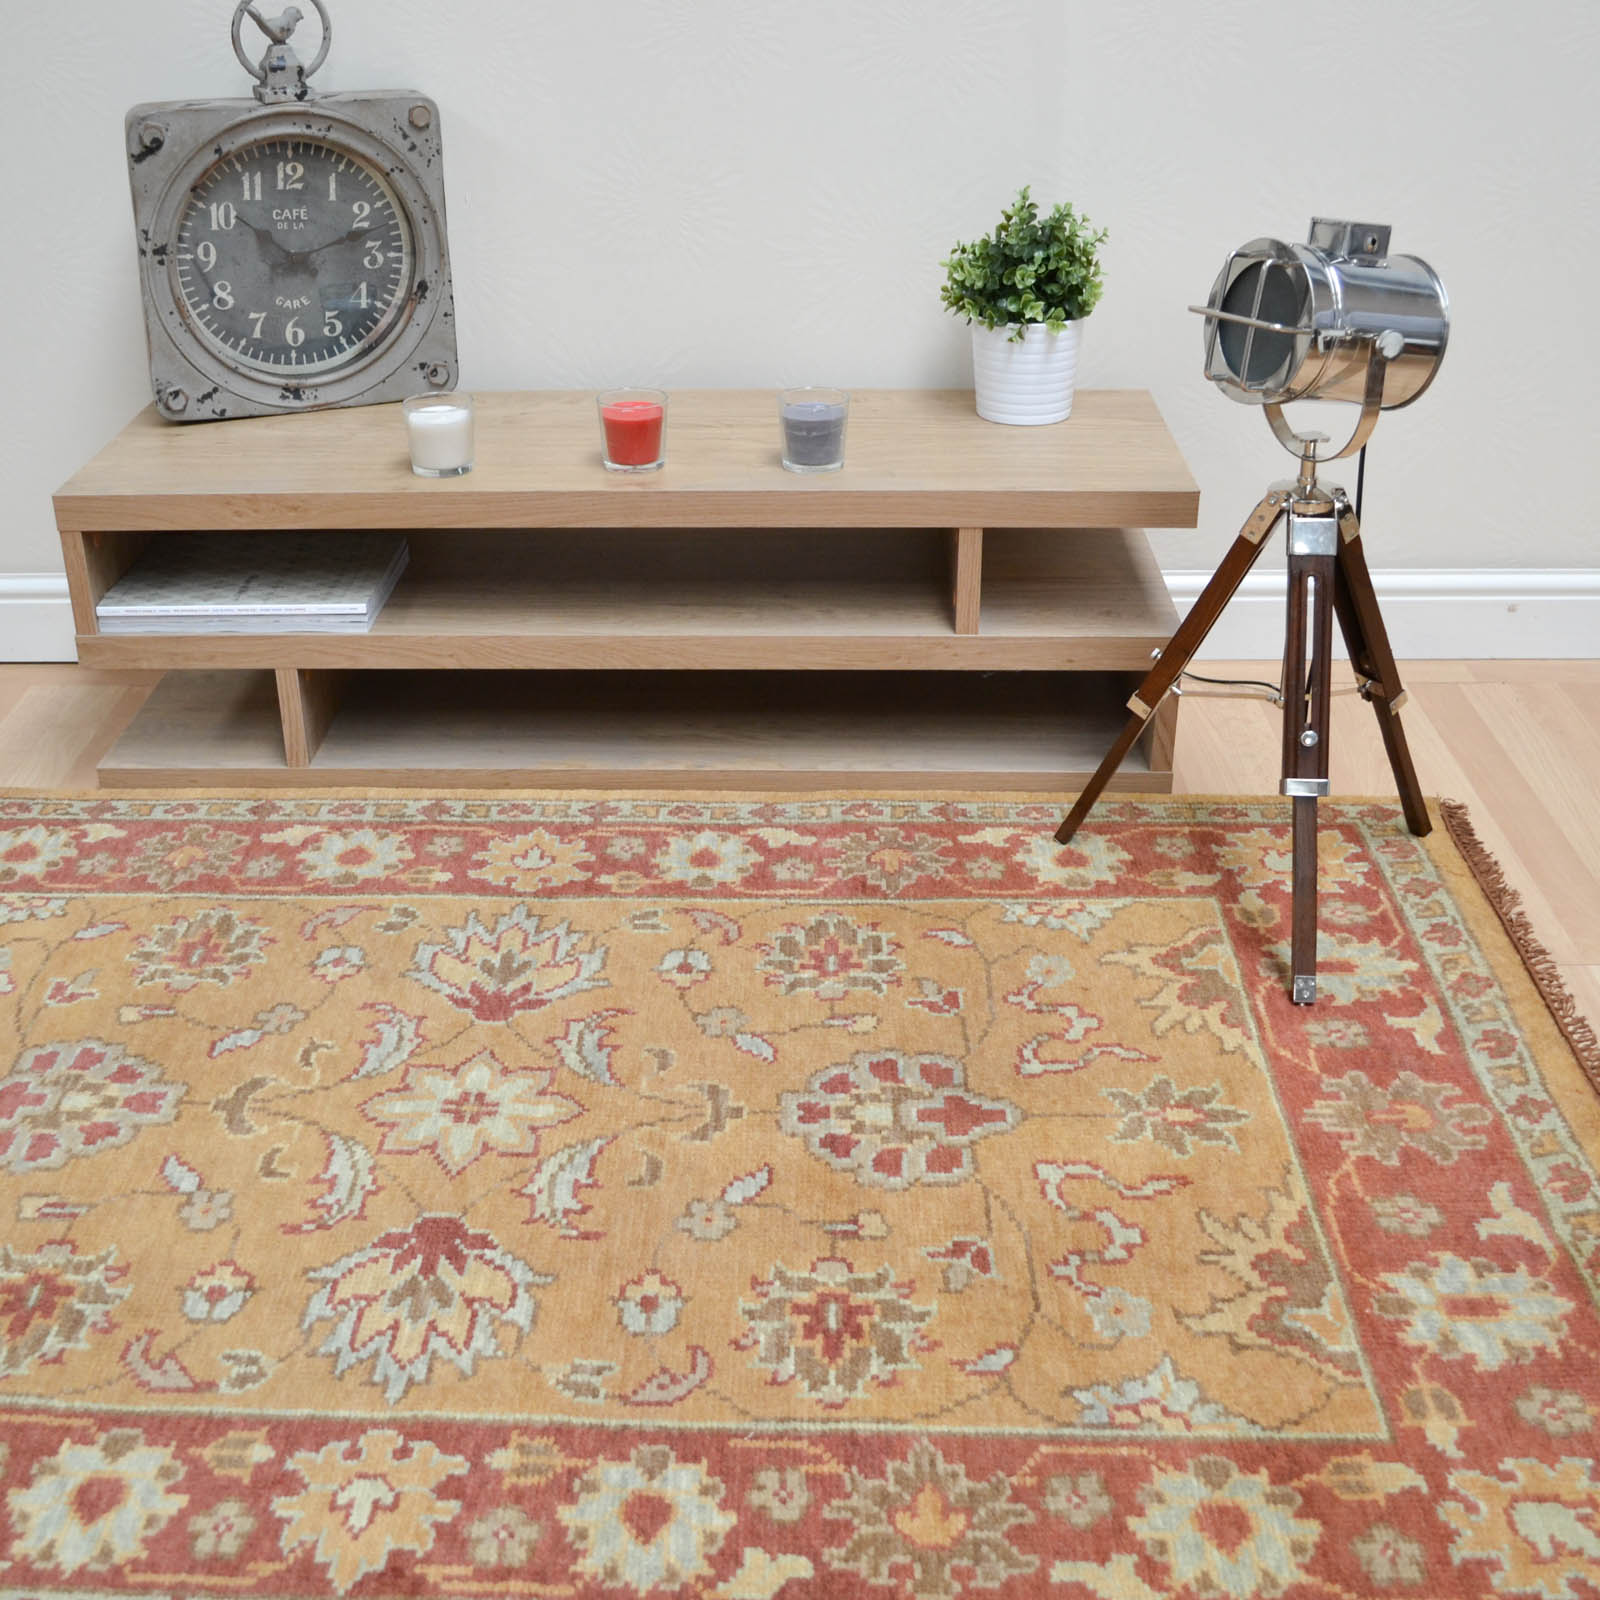 Taj Indian Agra Rugs - Hand Knotted Pure Wool in Gold Rust